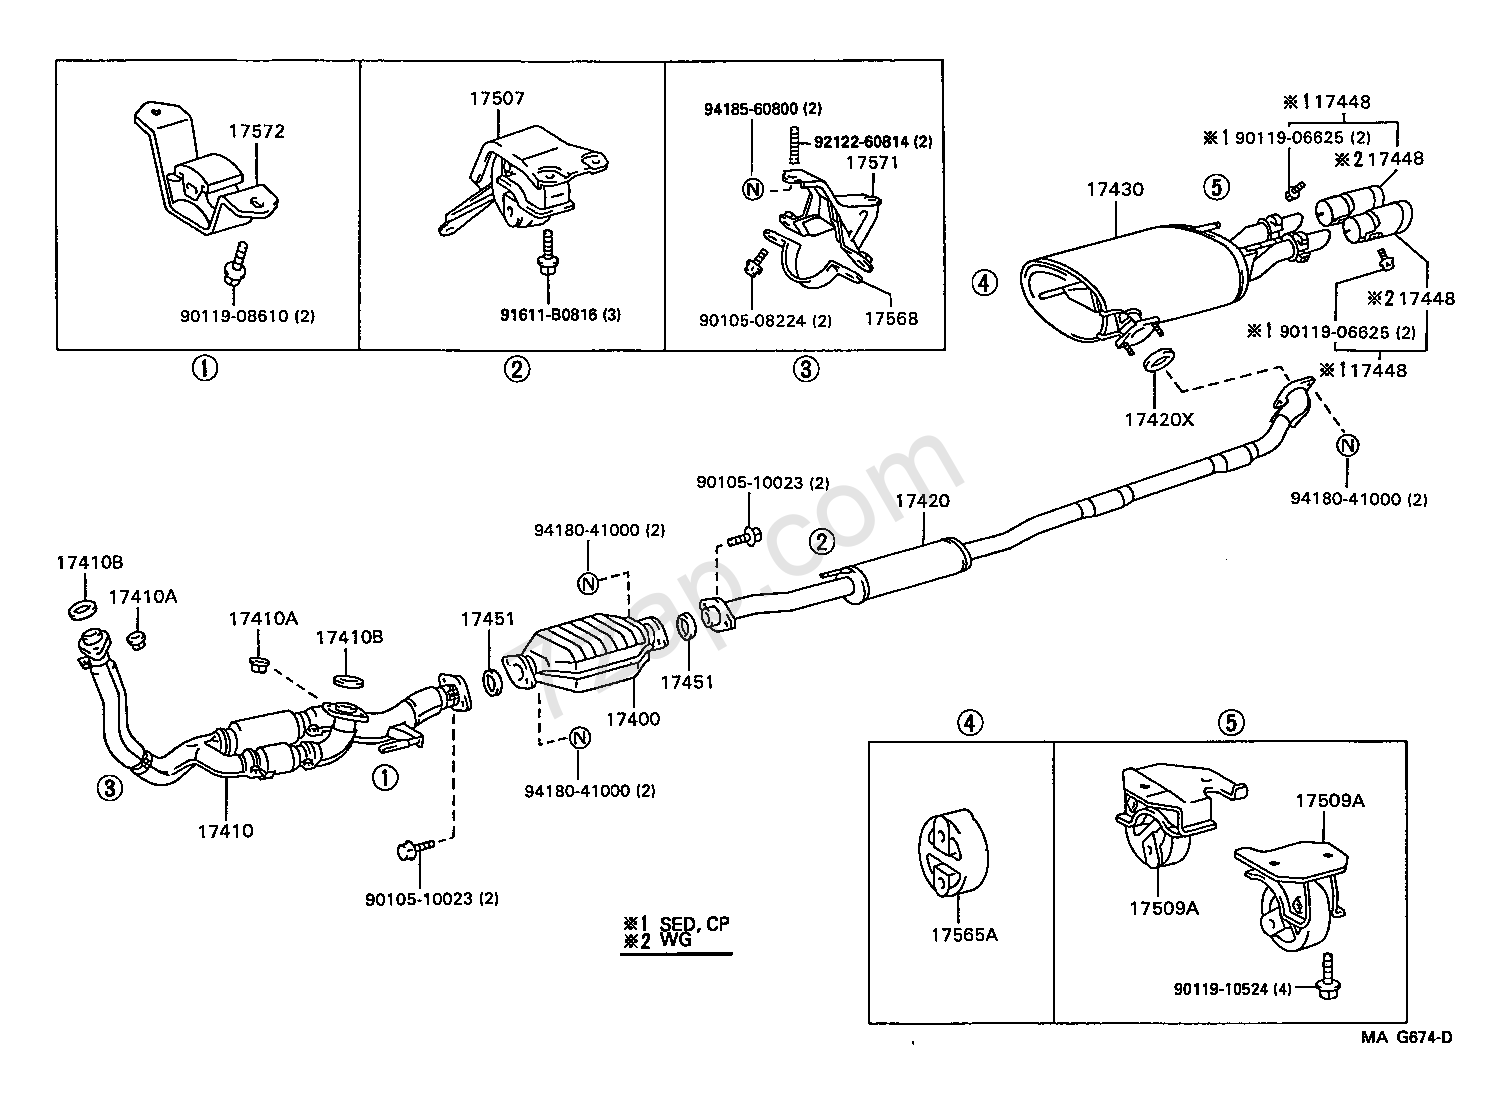 Toyota 1mz Fe Engine Diagram Electrical Wiring Camry Cylinder Block And Schematic Diagrams U2022 2005 Parts